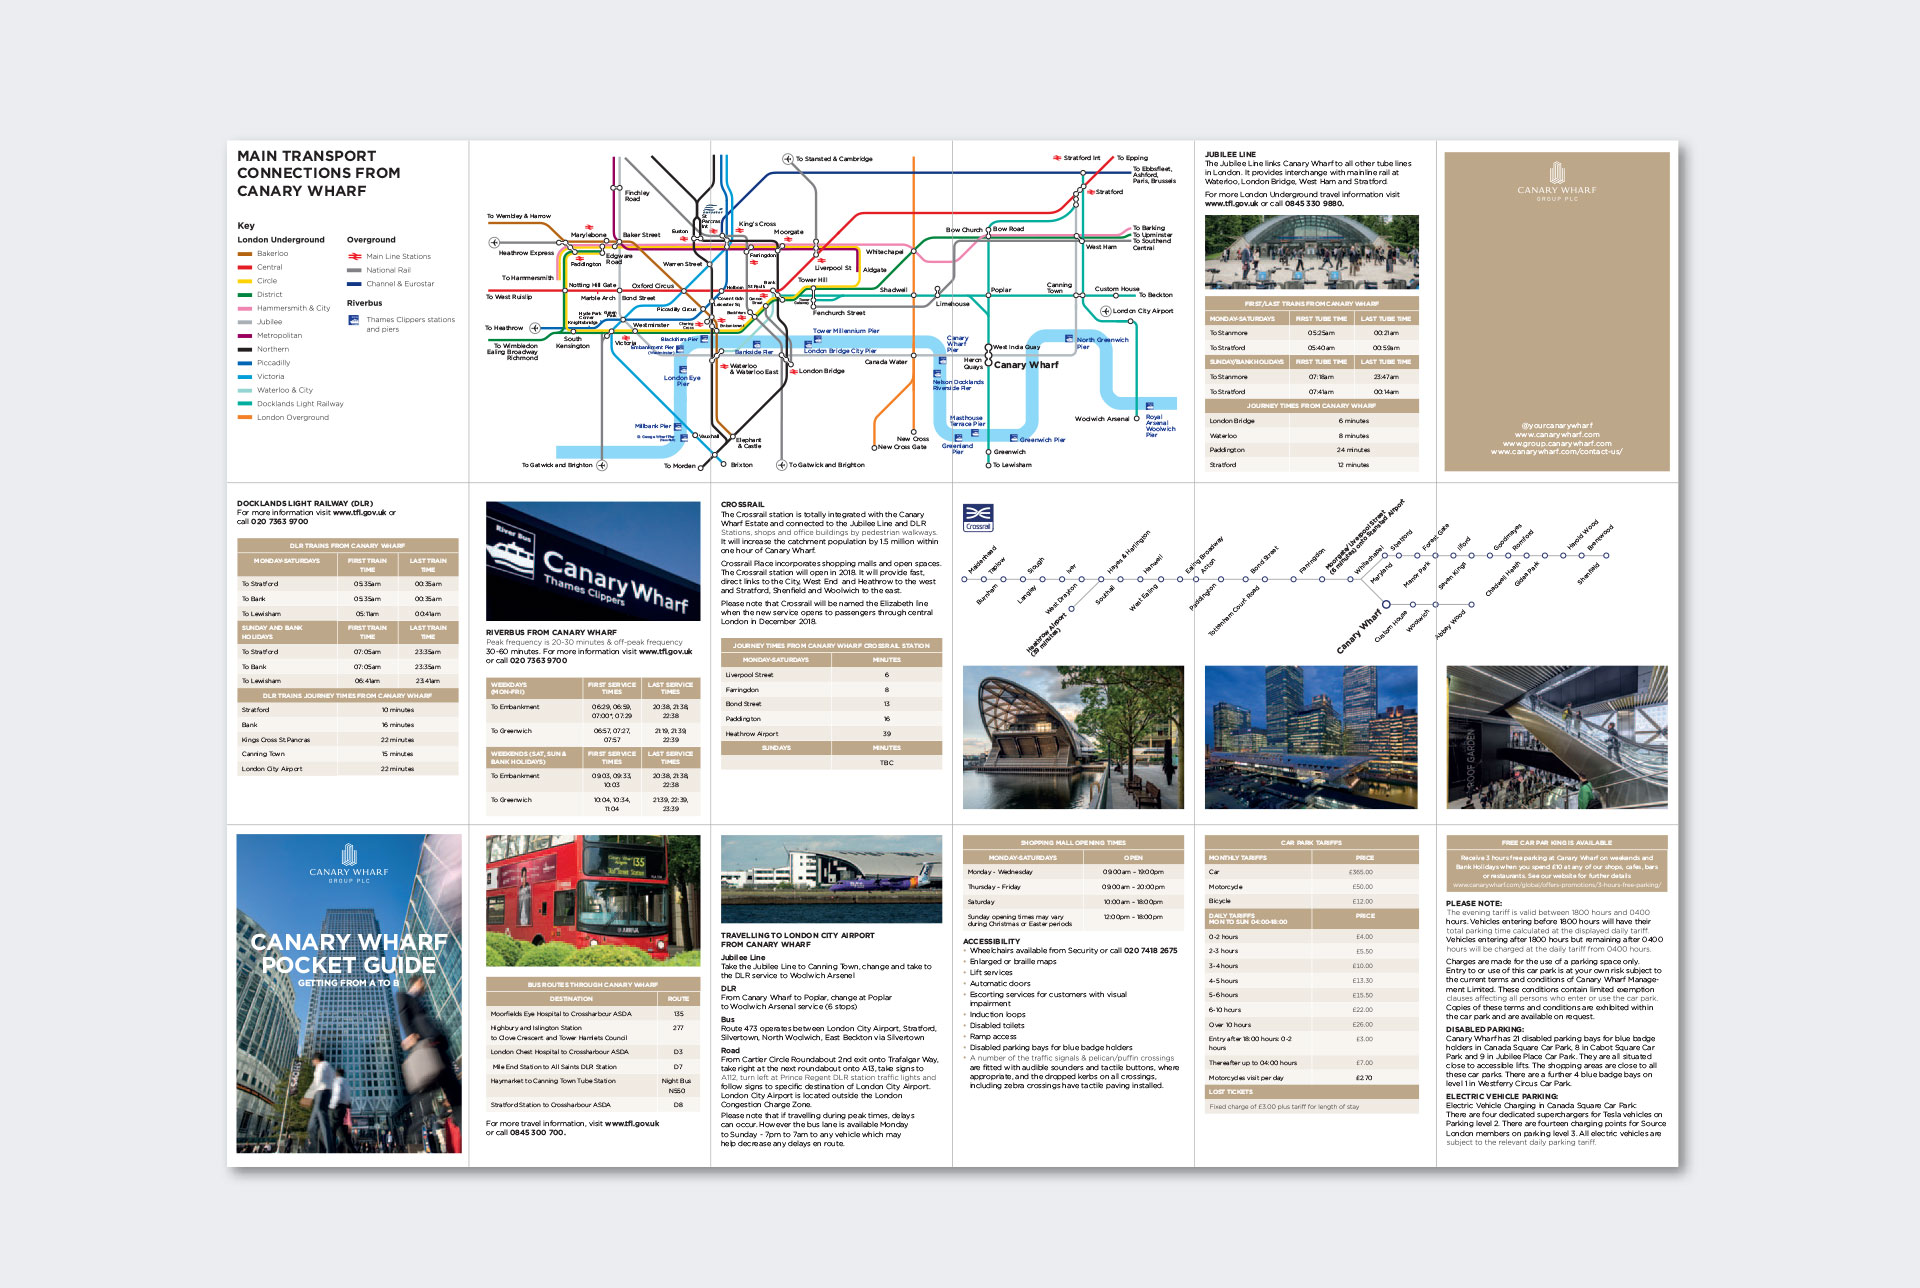 canary-wharf-pocket-guide.jpg